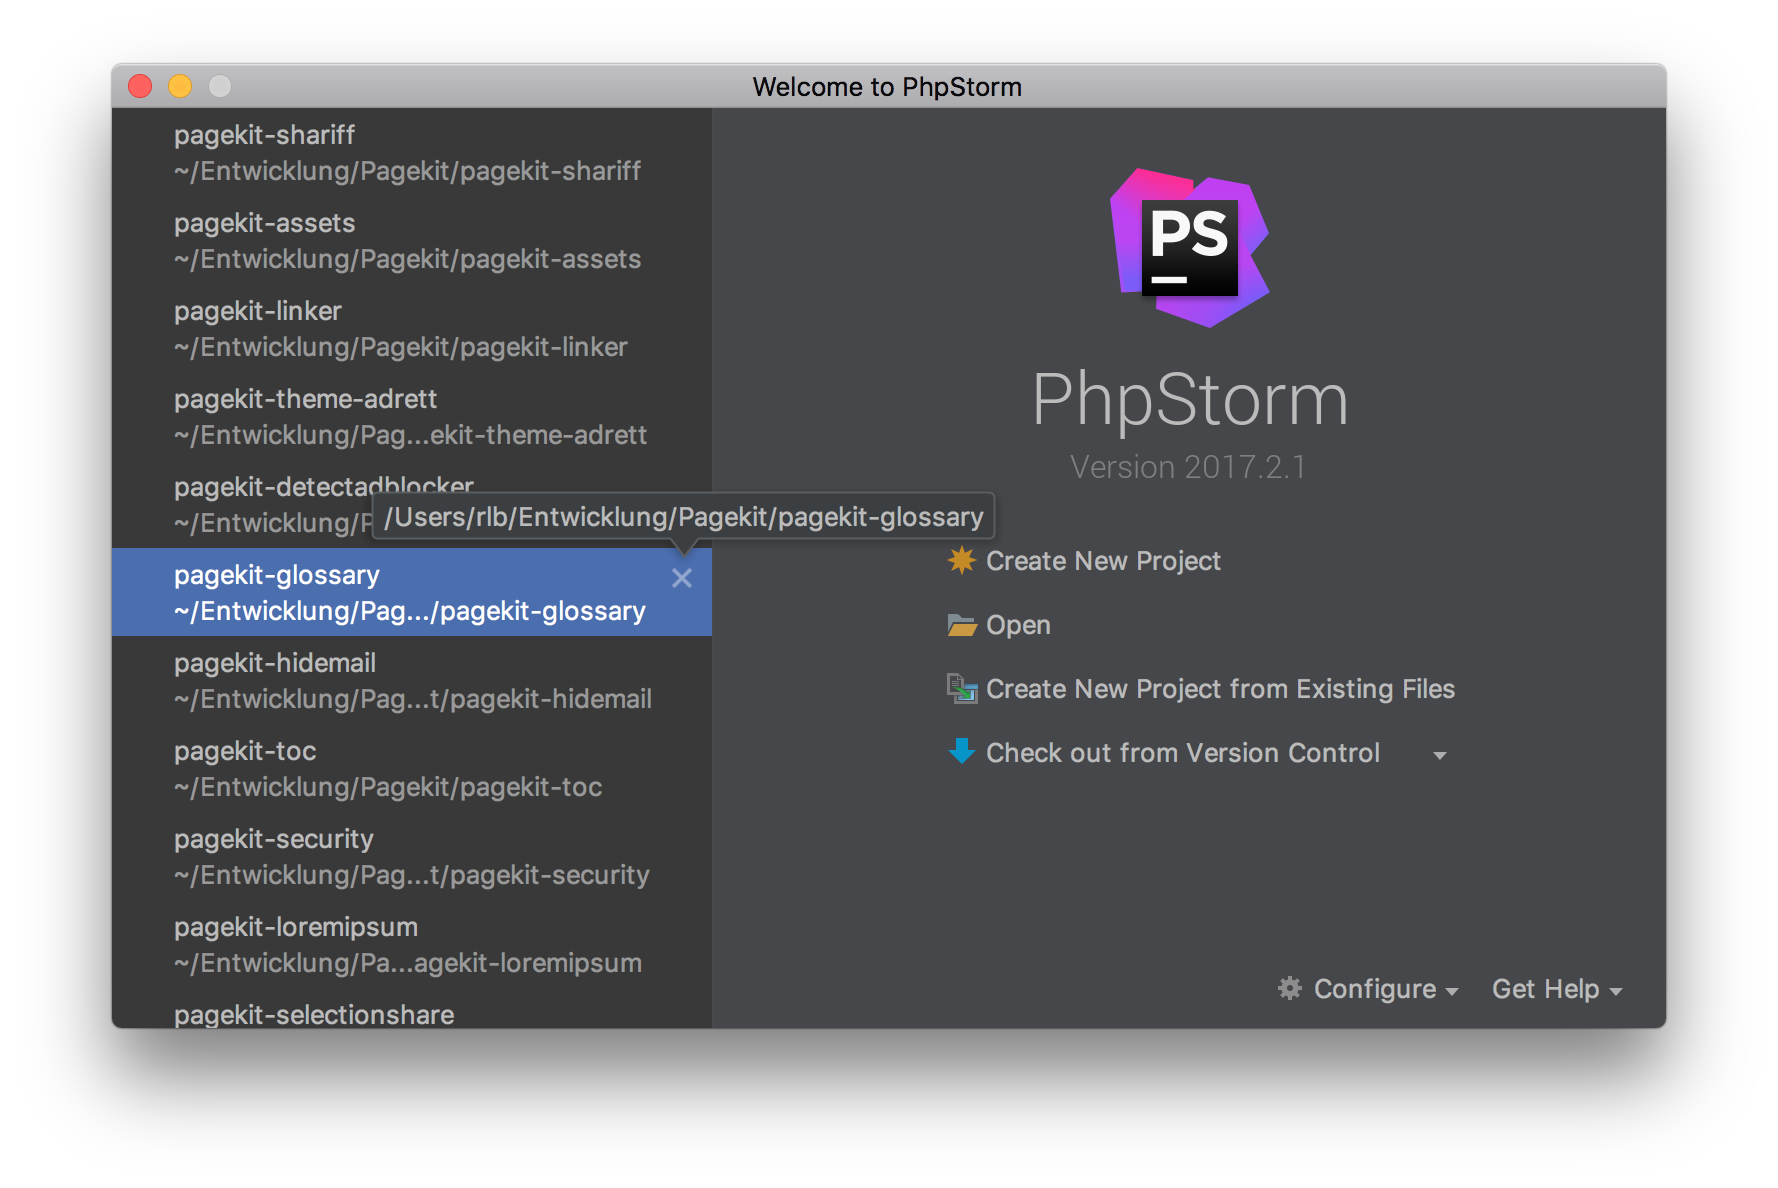 Phpstorm welcome screen